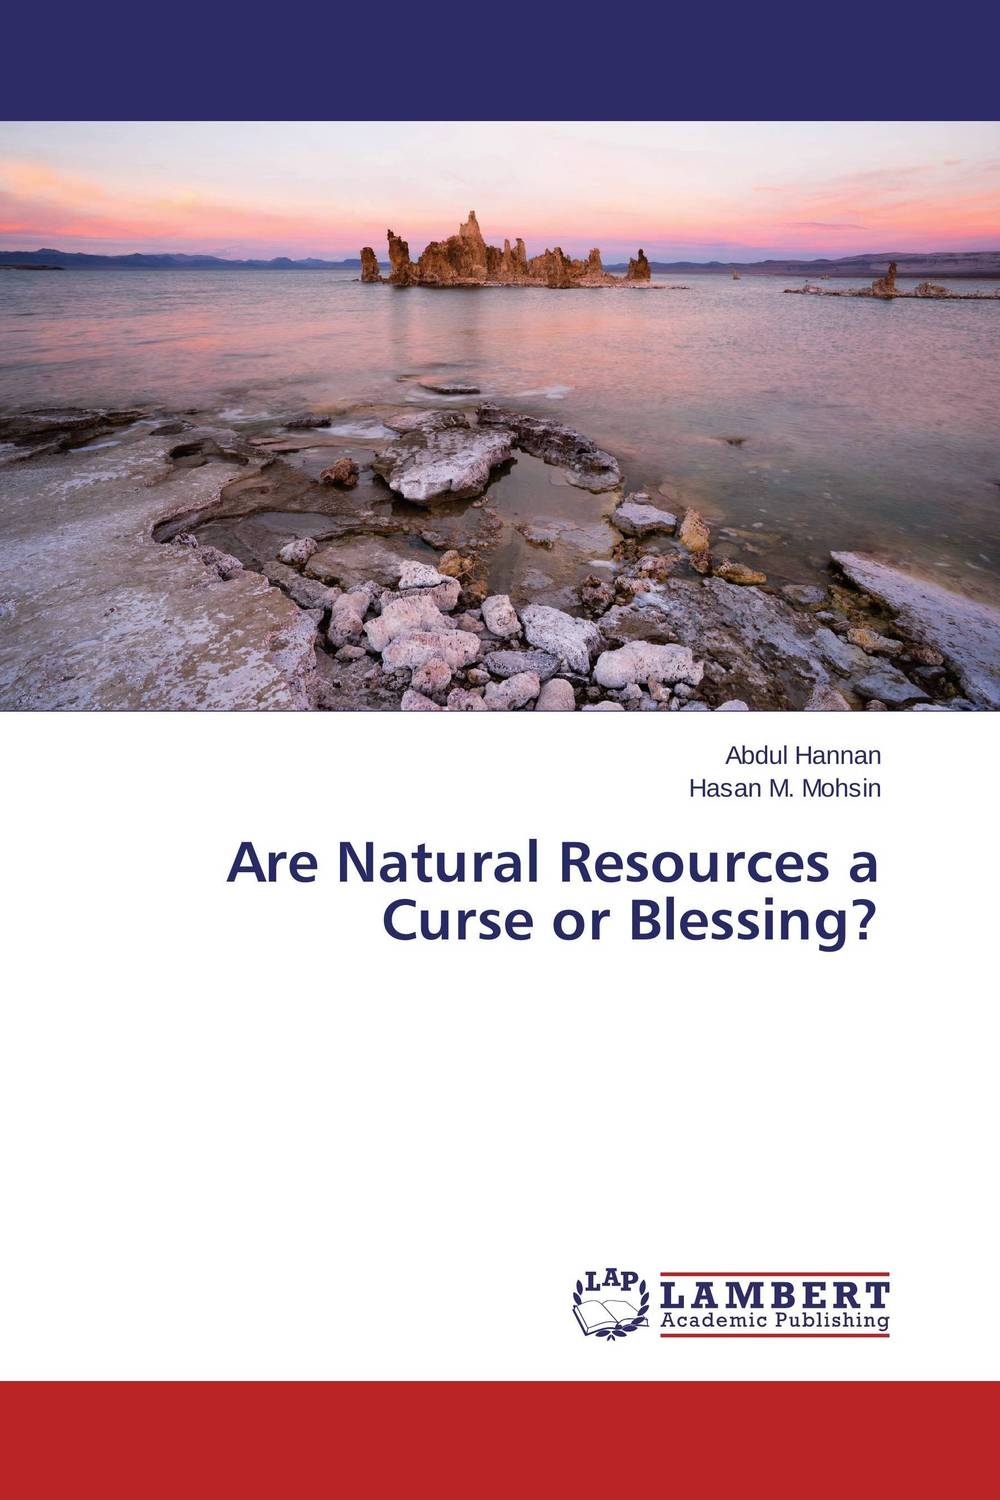 Are Natural Resources a Curse or Blessing? костюм для танца живота society for the promotion of natural hall yc1015 ad